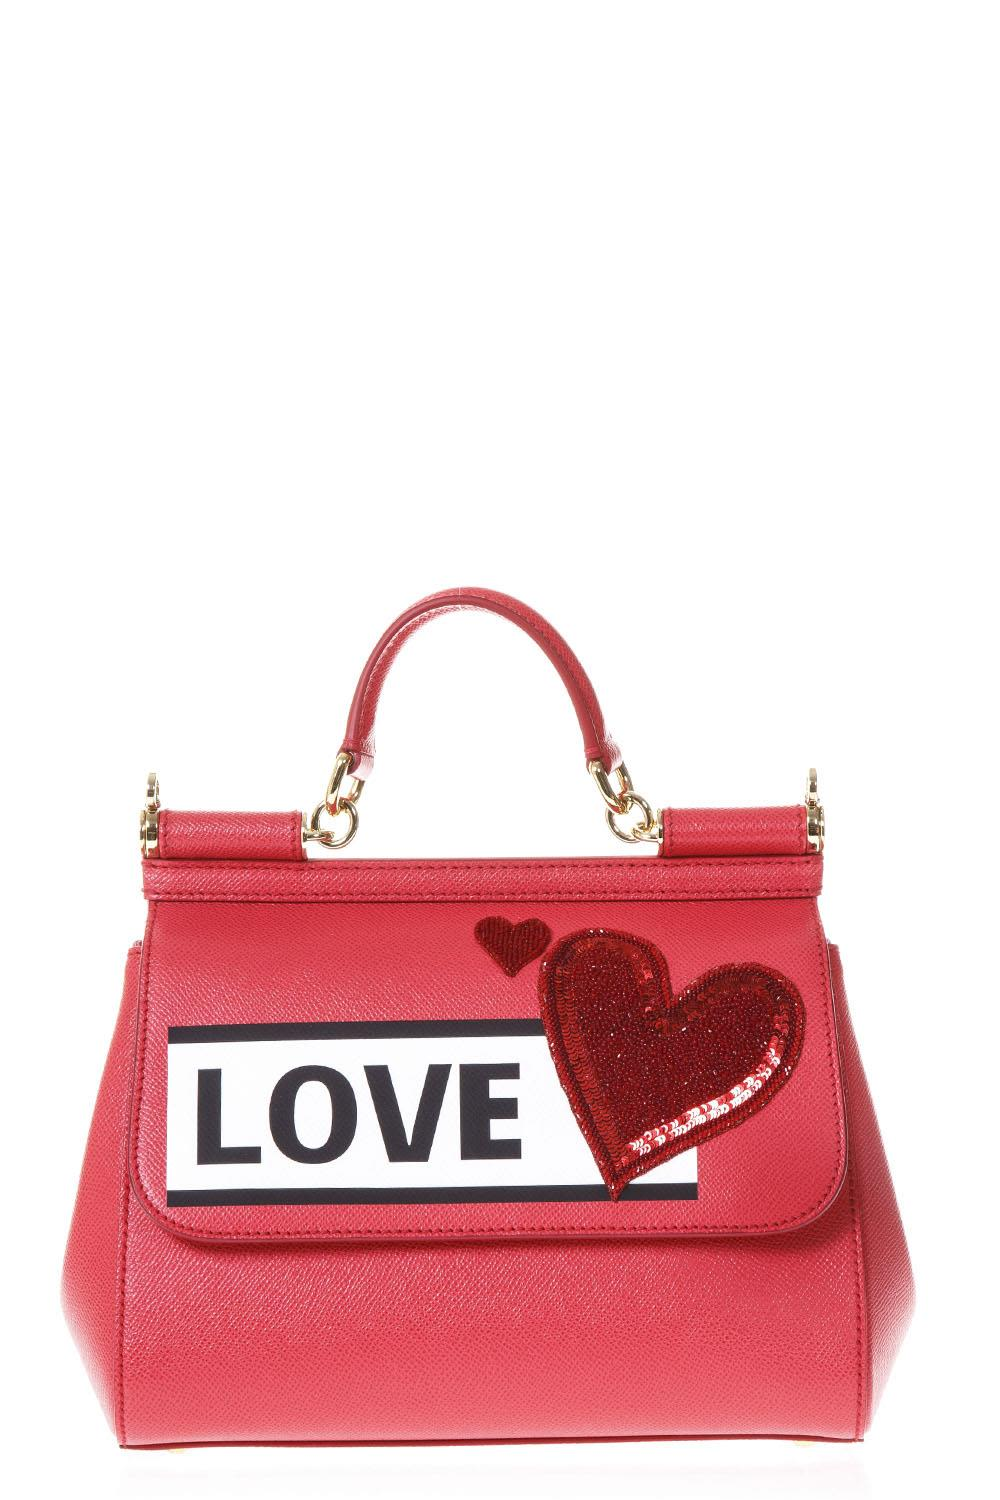 Dolce & Gabbana mini Sicily love patch shoulder bag Free Shipping Best Store To Get cxmMDa03SC